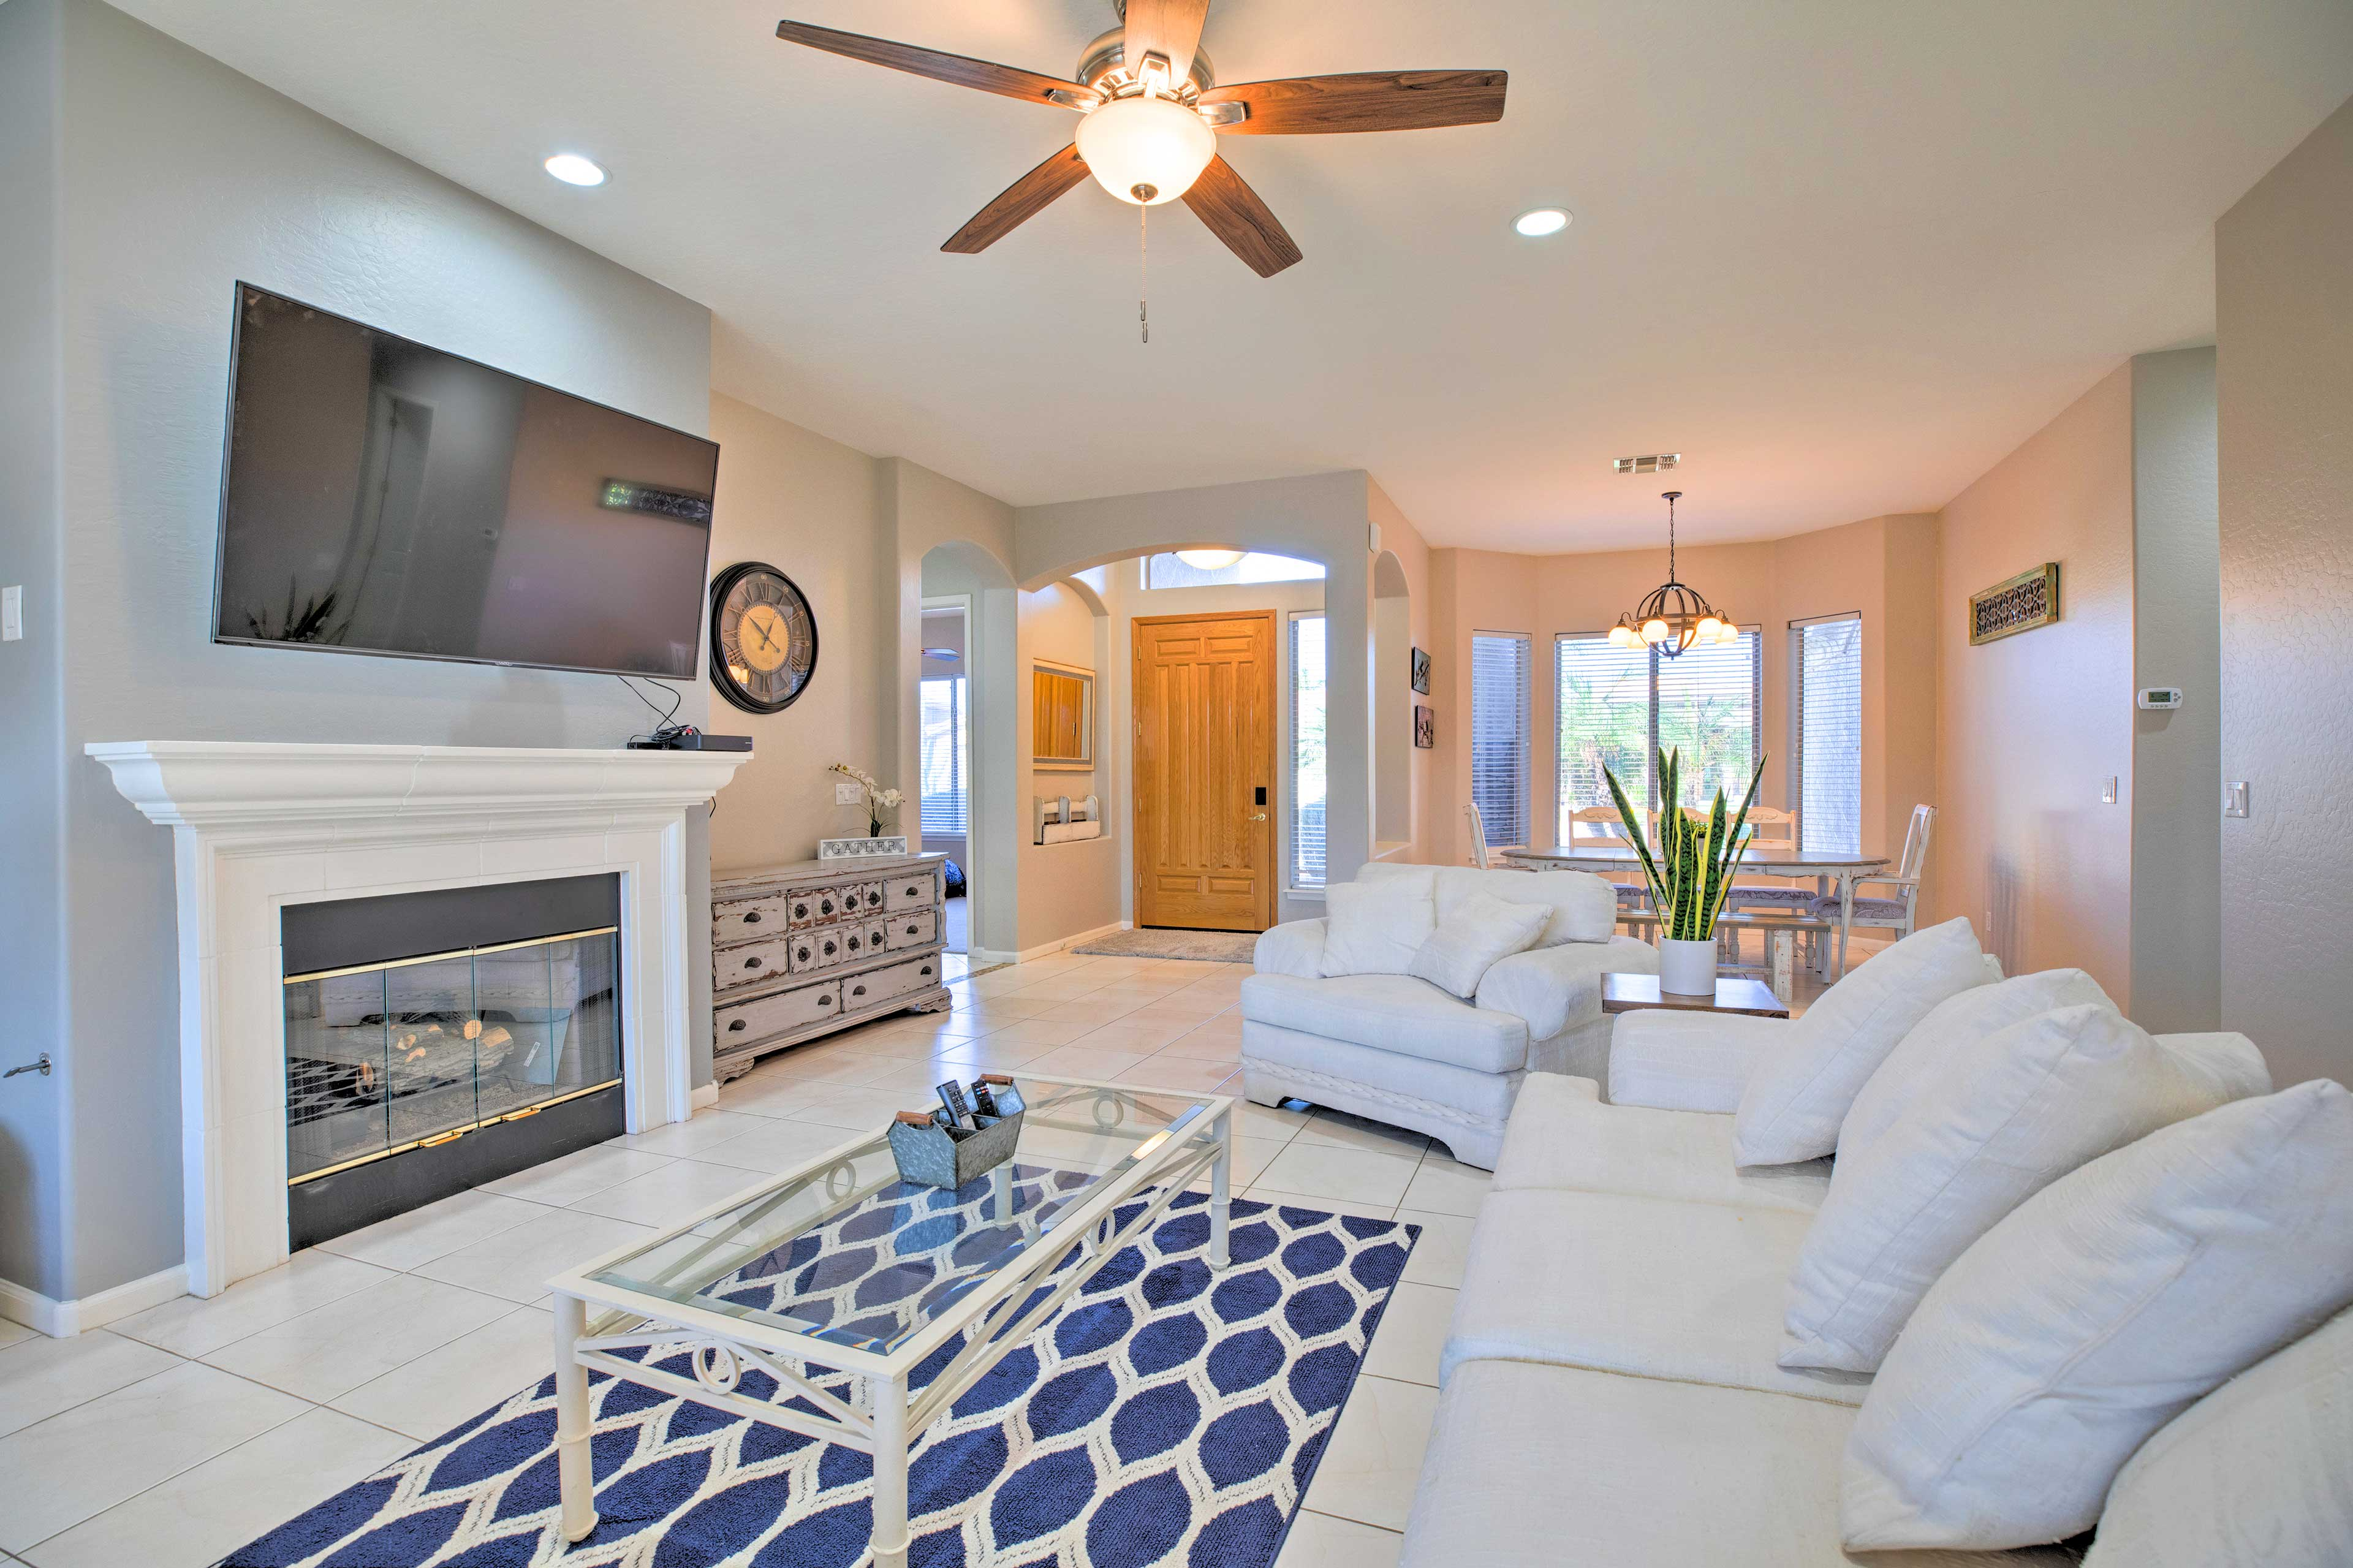 The 4-bed, 2-bath vacation rental boasts ample upscale comforts.